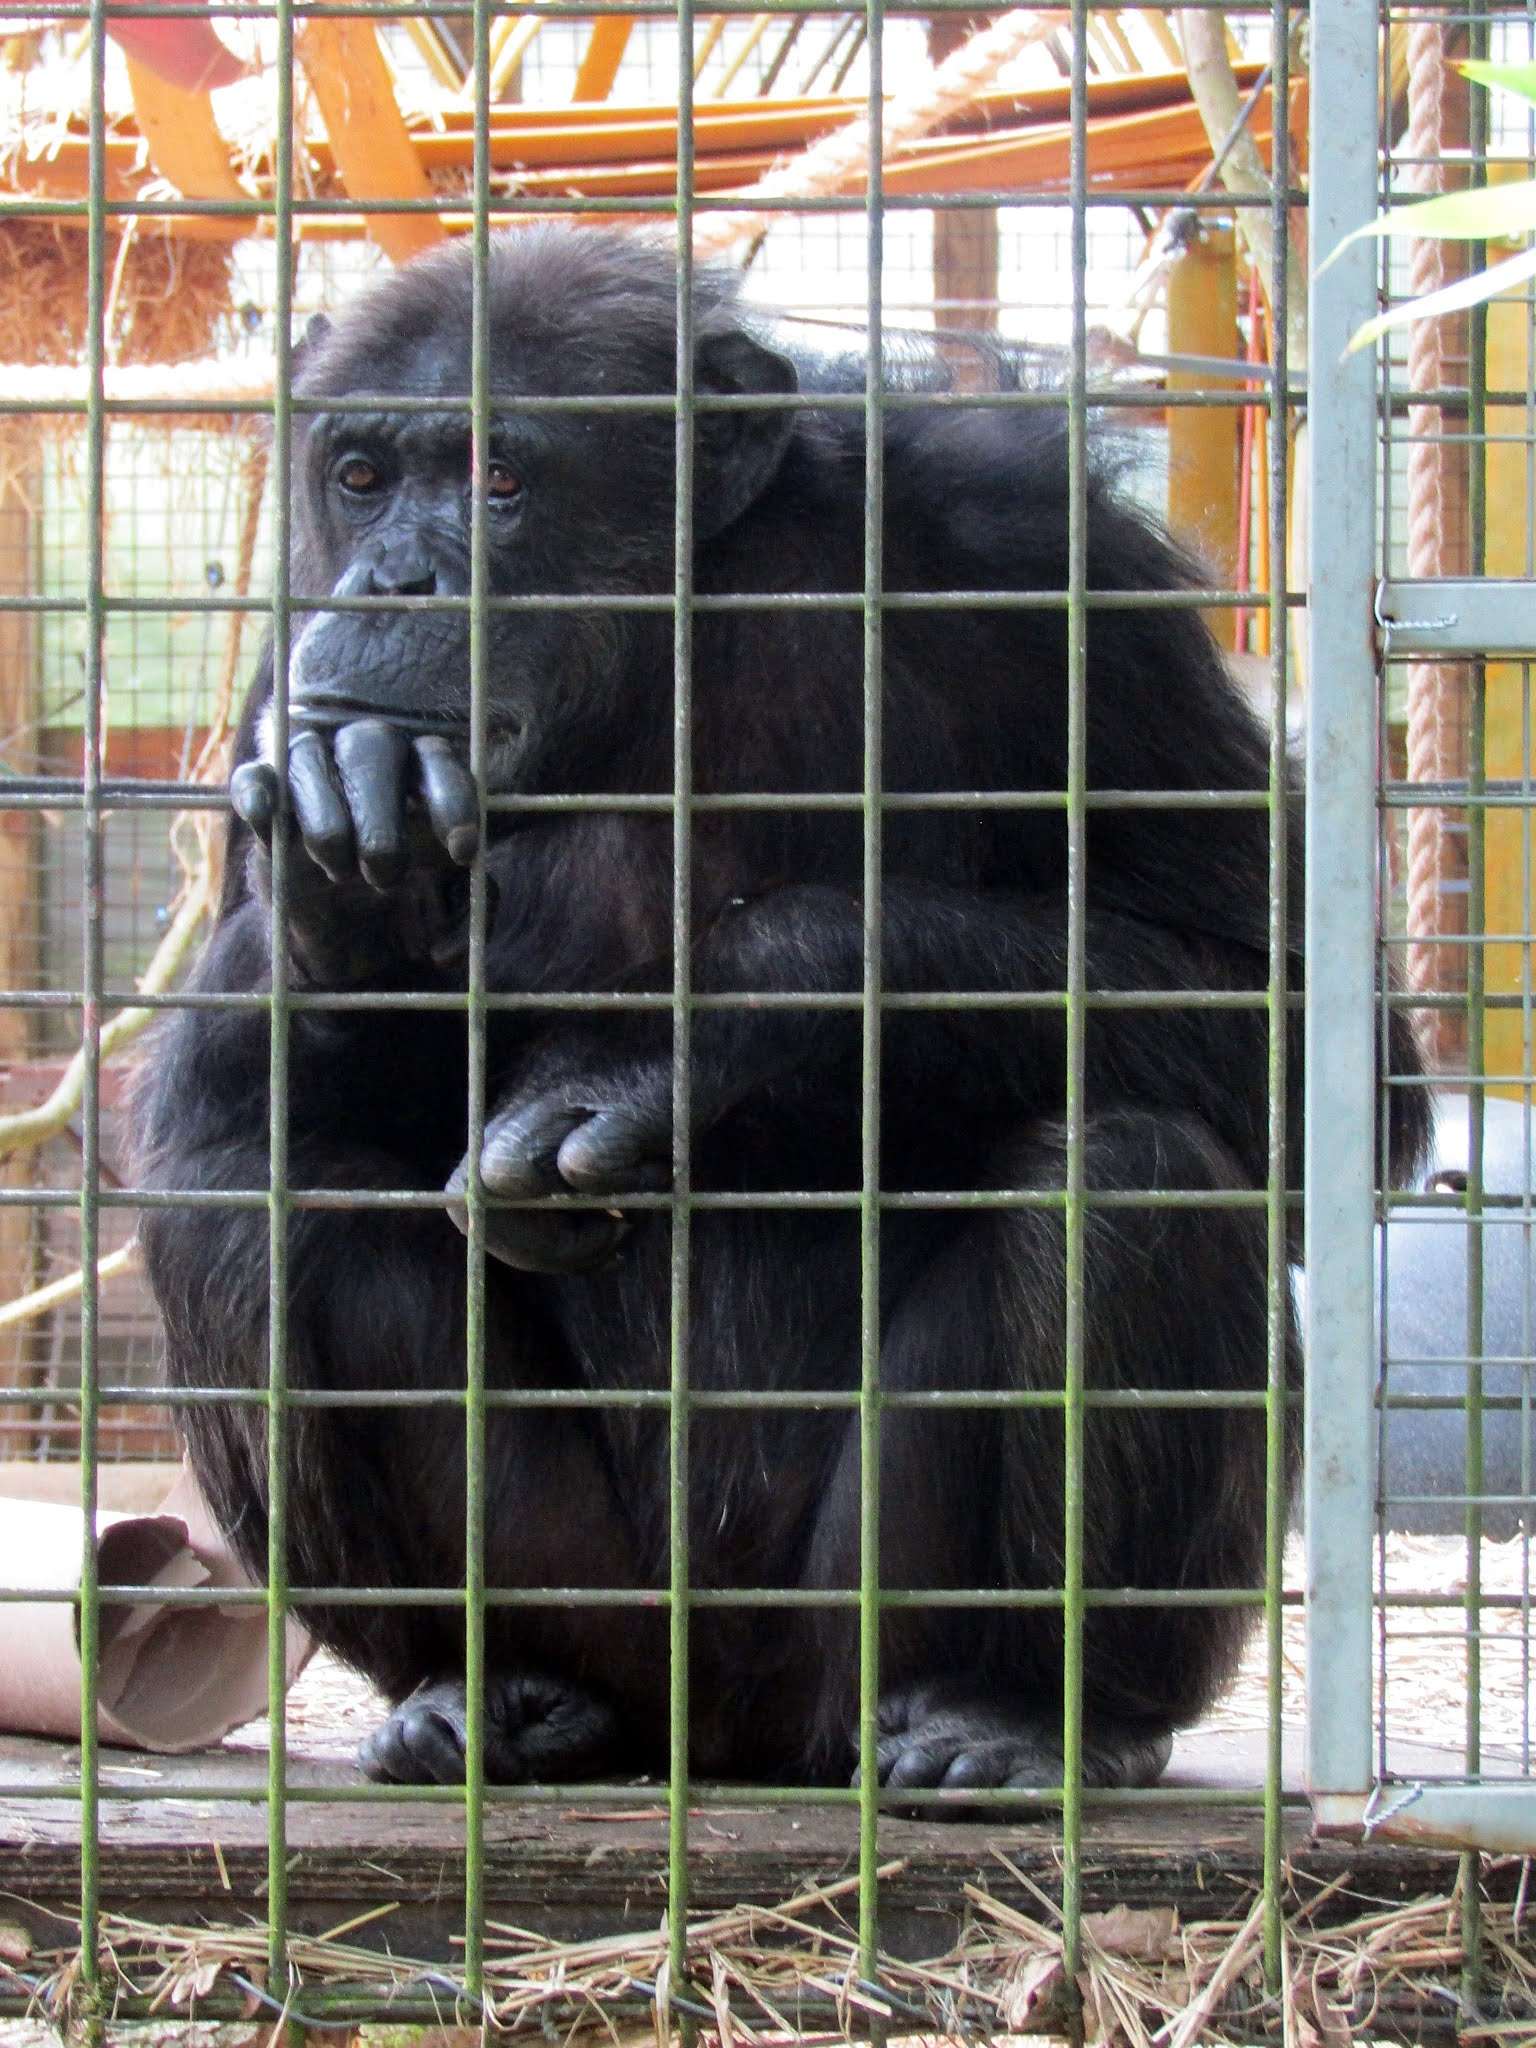 A photo of an adult chimpanzee at Whipsnade Zoo.